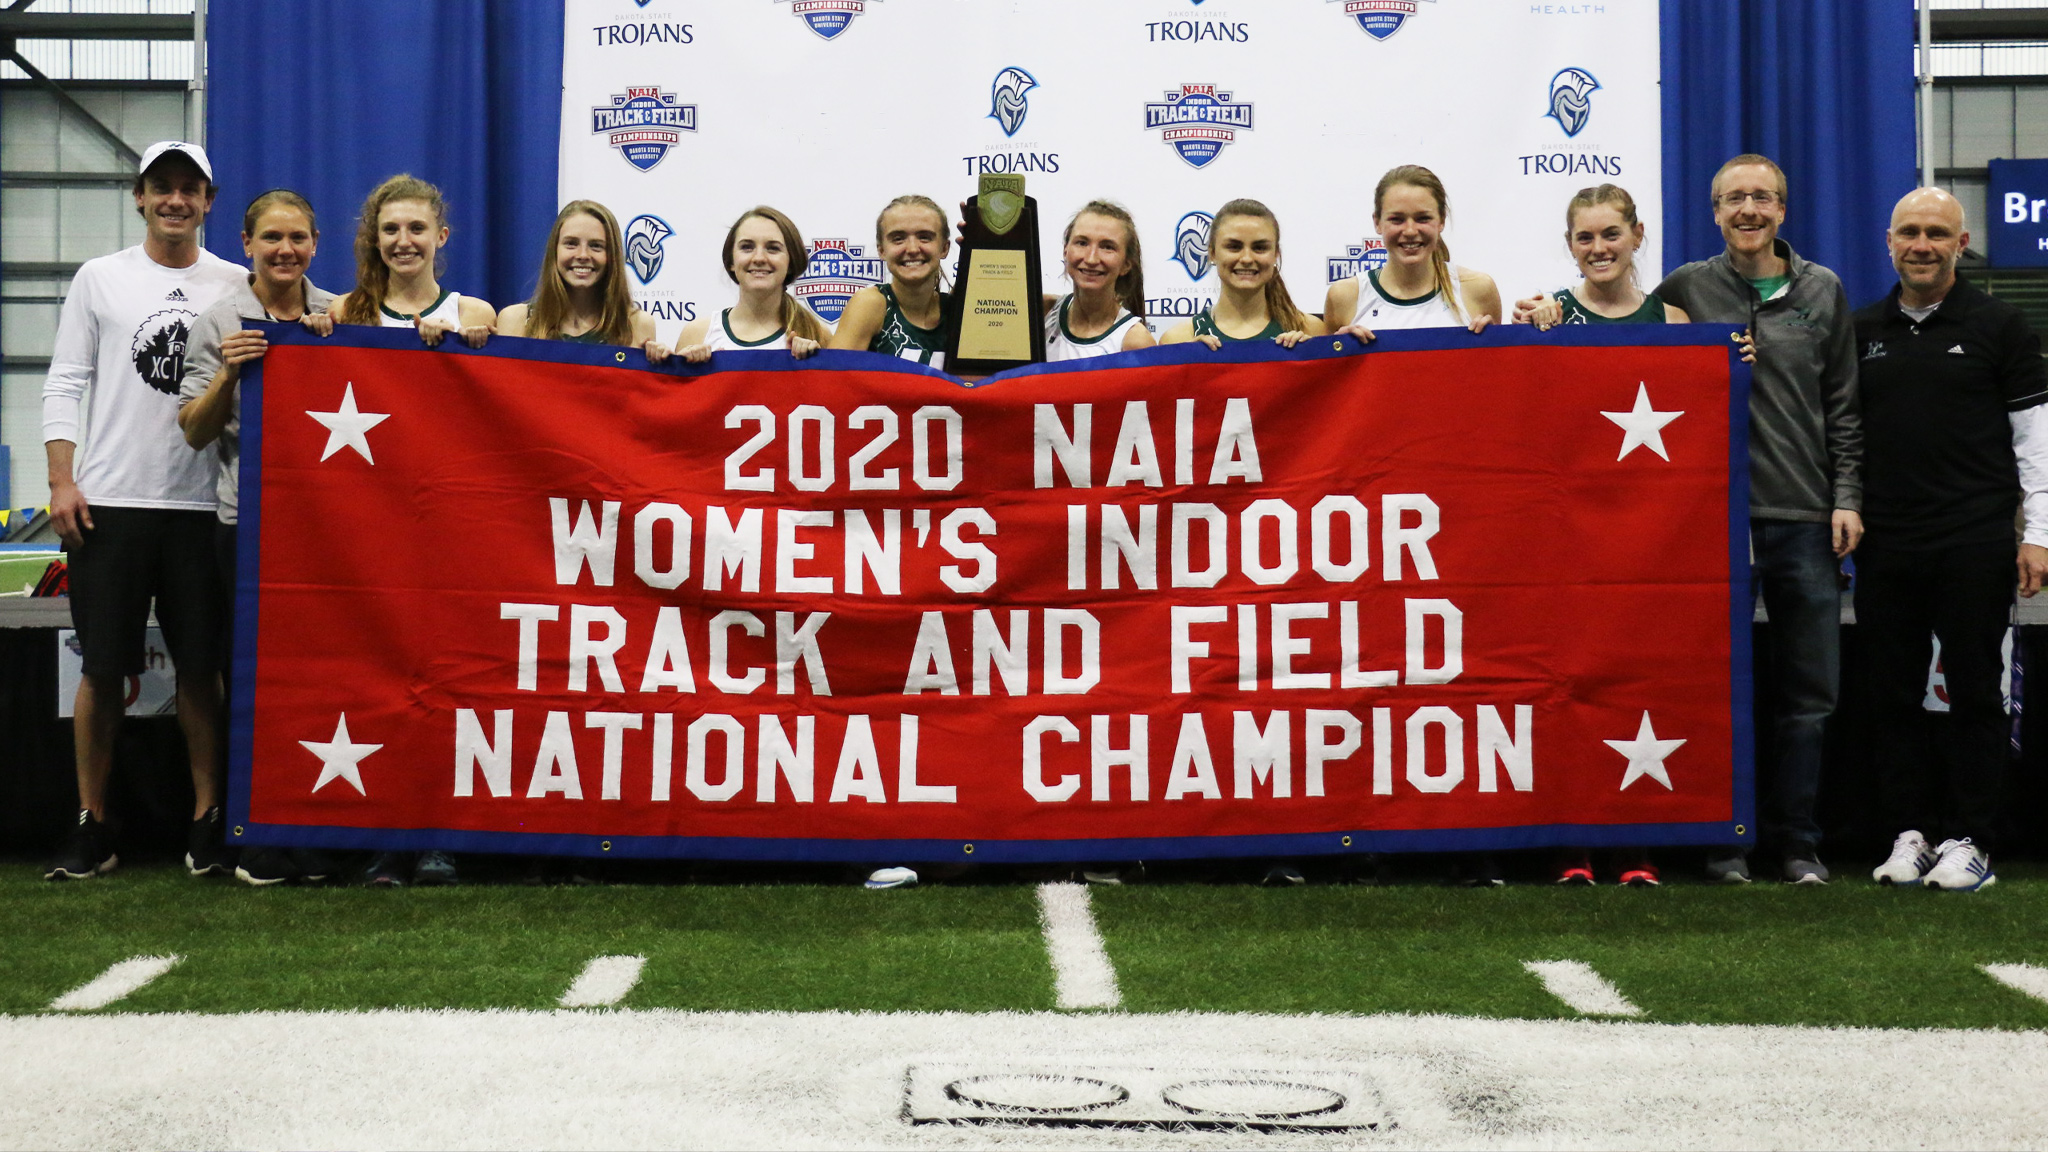 Huntington women's track & field wins NAIA national indoor championship